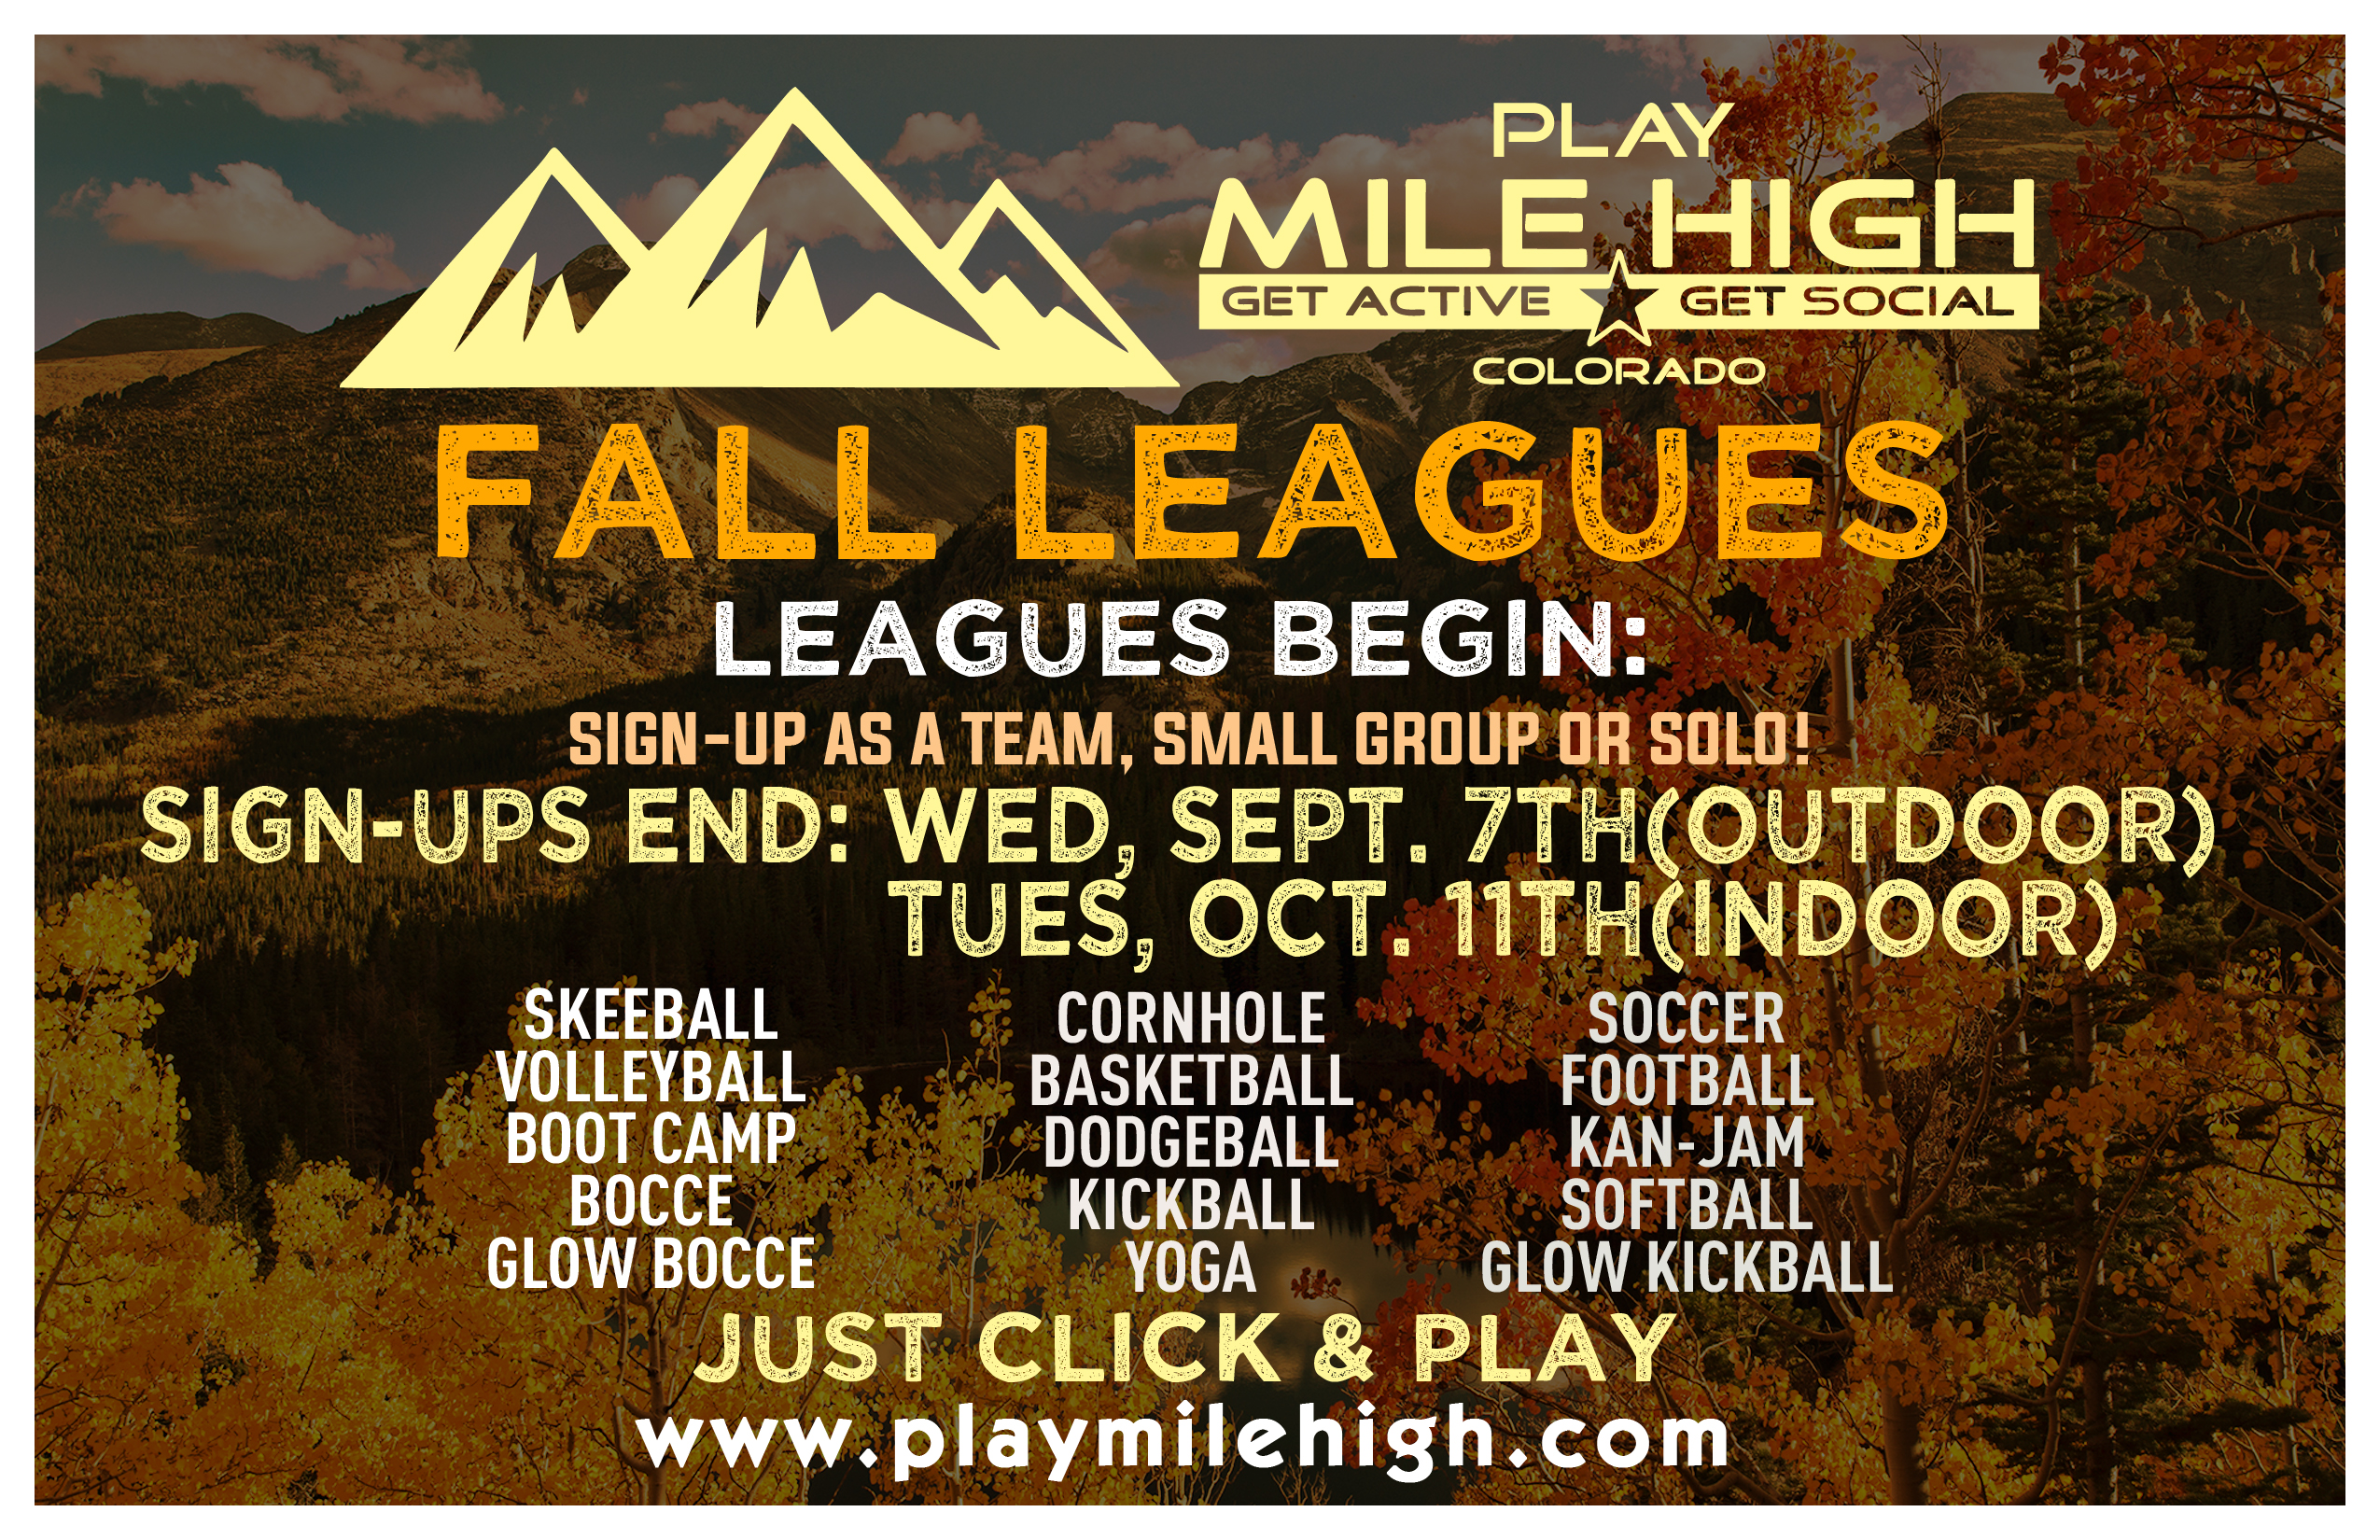 POSTER-FALL2016-PLAY MILE HIGH